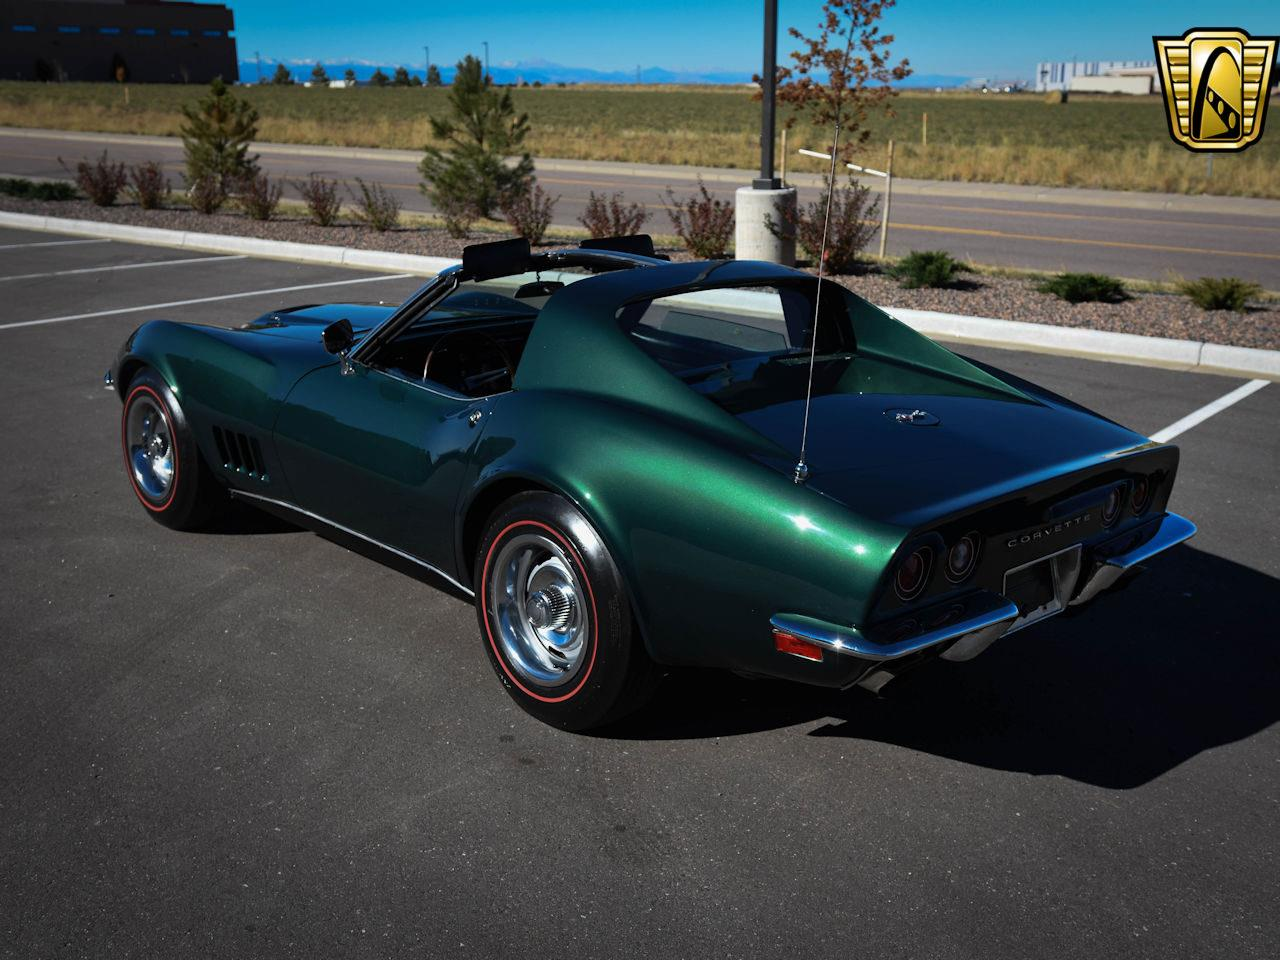 Large Picture of Classic '68 Corvette located in O'Fallon Illinois - $27,995.00 Offered by Gateway Classic Cars - Denver - M9KE